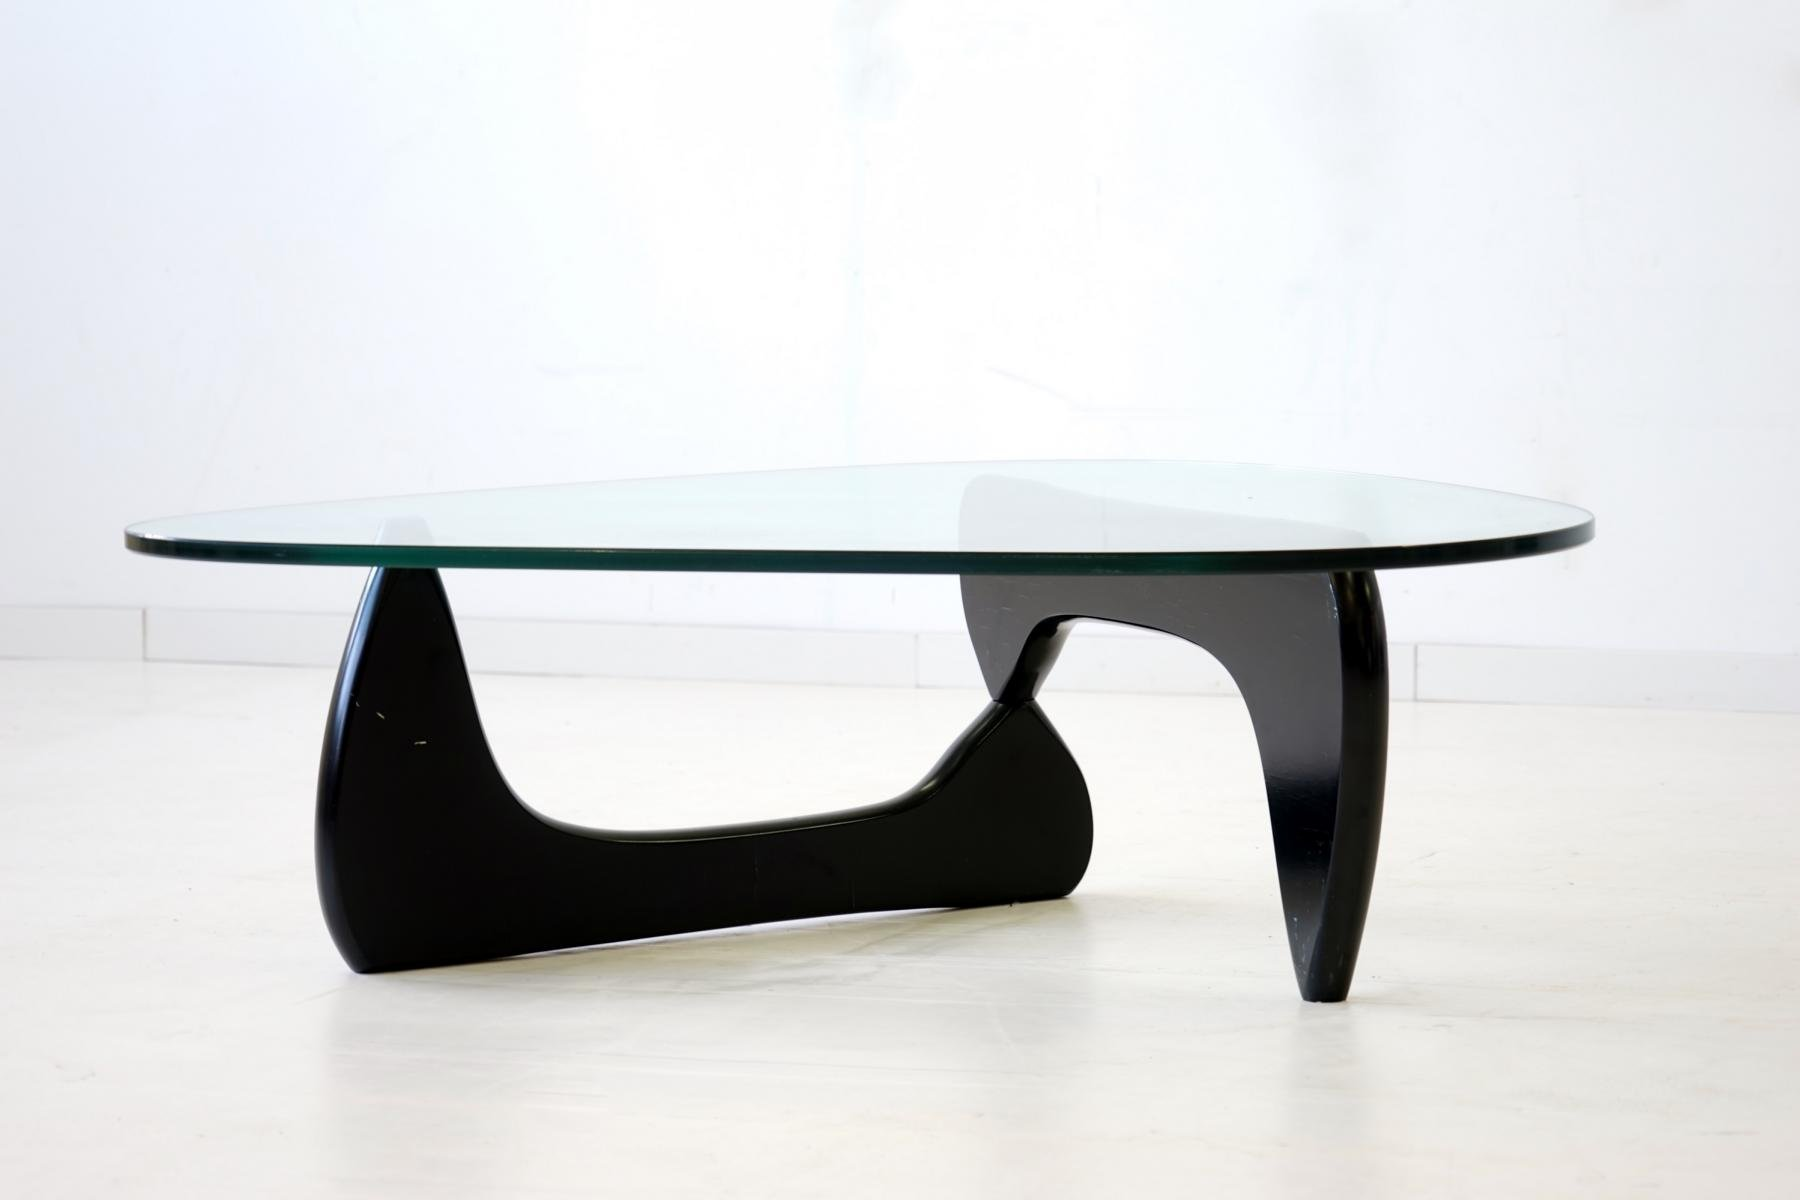 Glass coffee table by isamu noguchi for herman miller 1960s for sale at pamono Herman miller noguchi coffee table